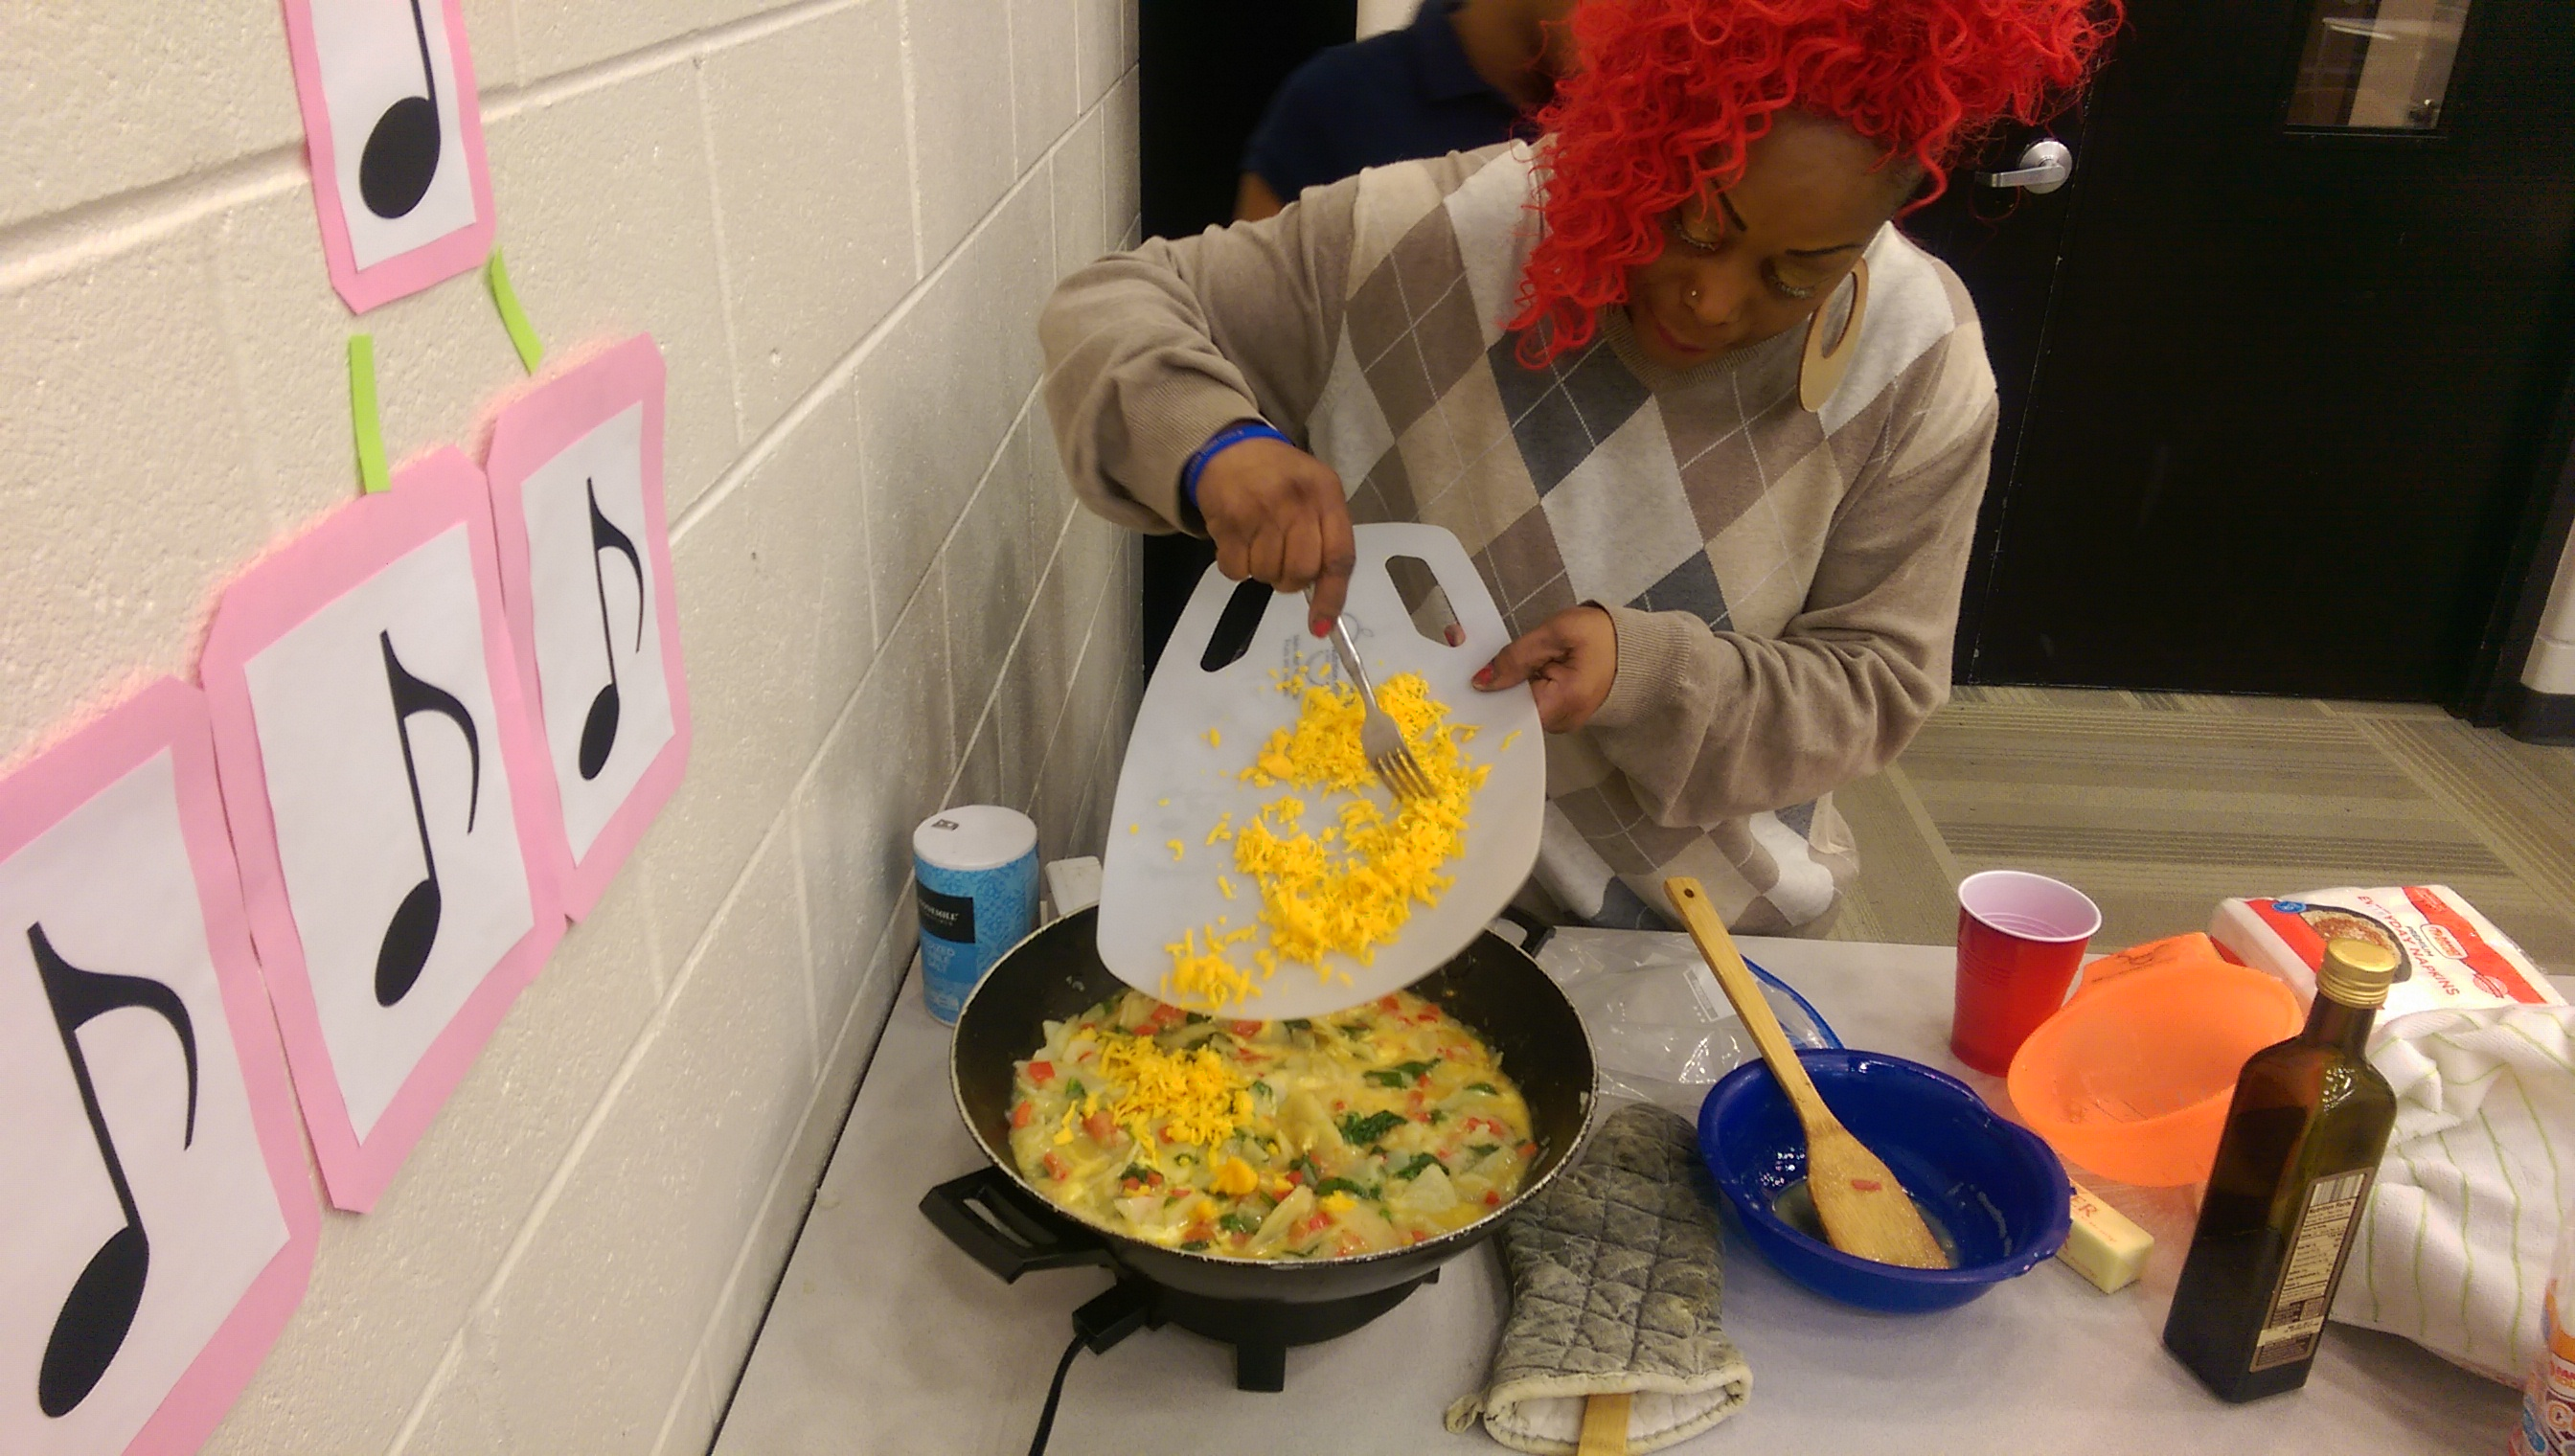 okt sharing healthy eating tips at gr public schools kitchen table cooking school Advertisements